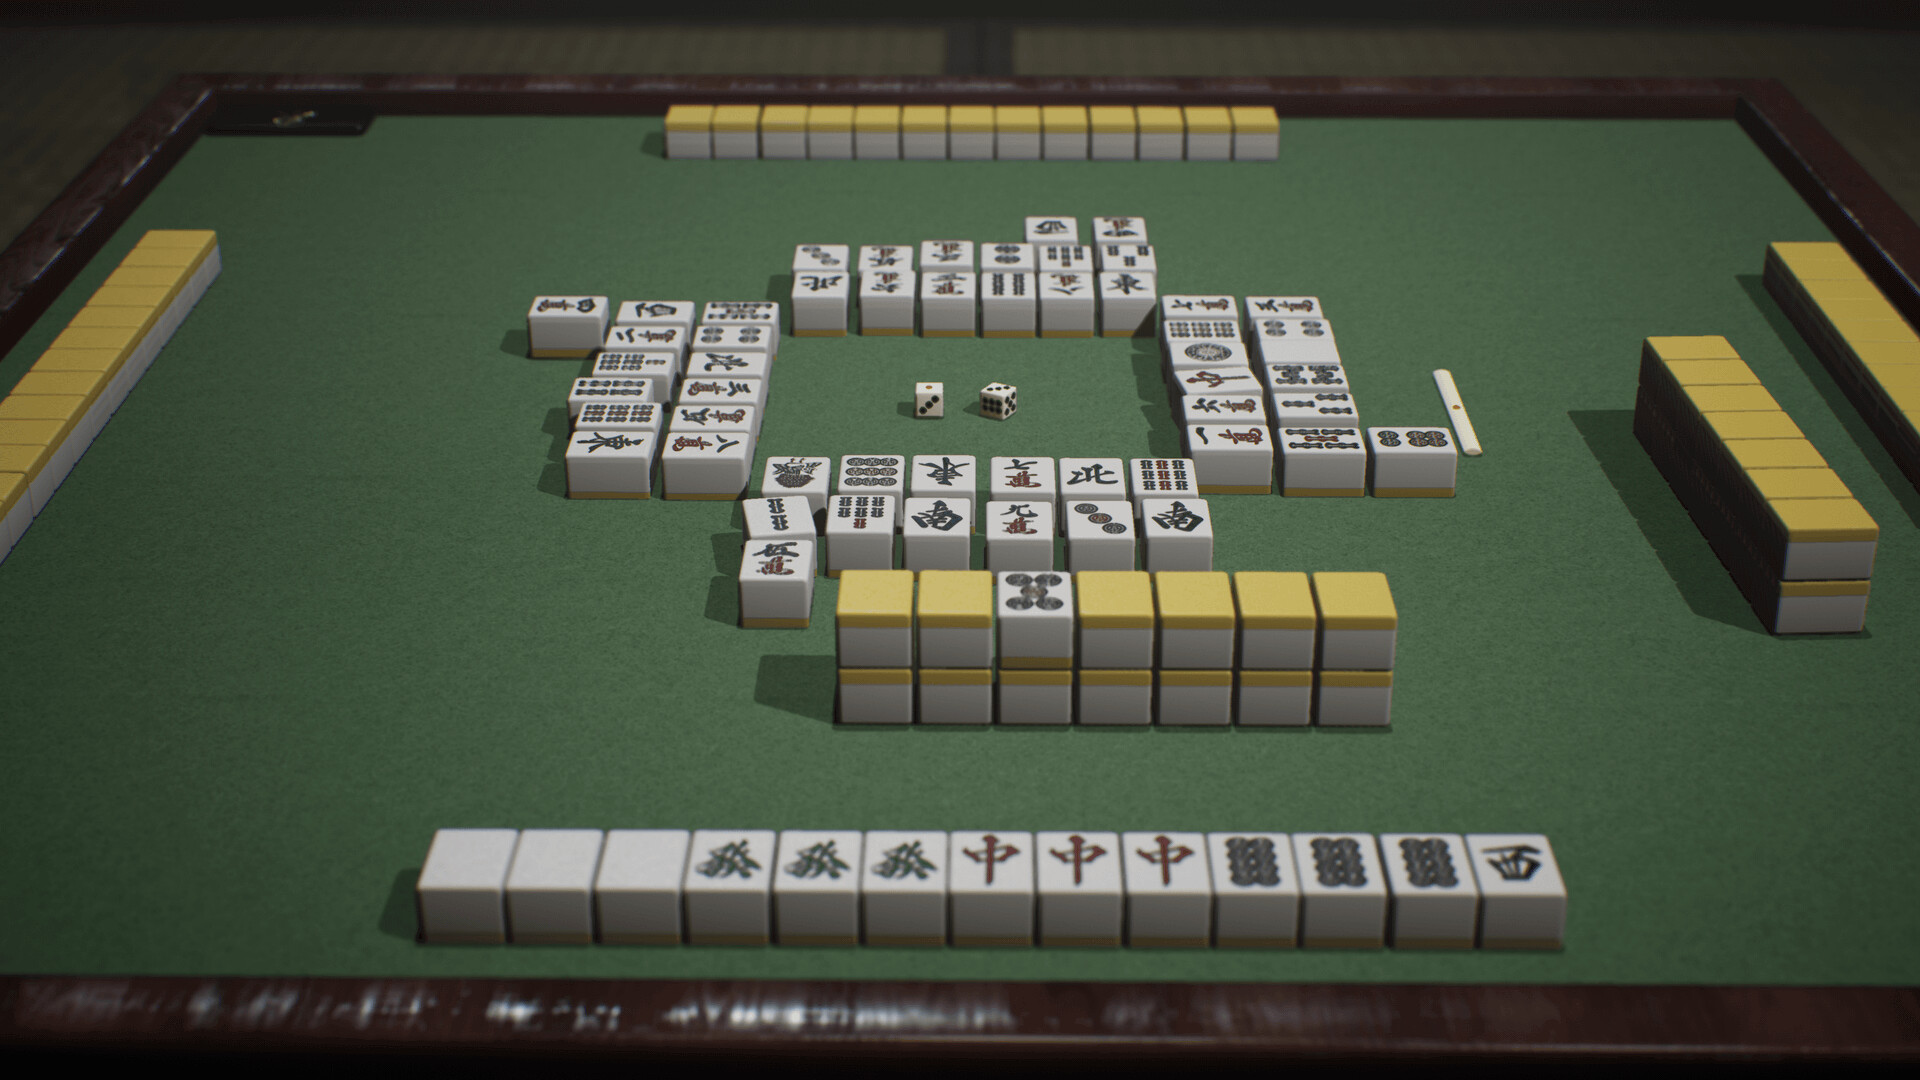 ArtStation - Mahjong - 3D Models for Game Engine, Bunno pen